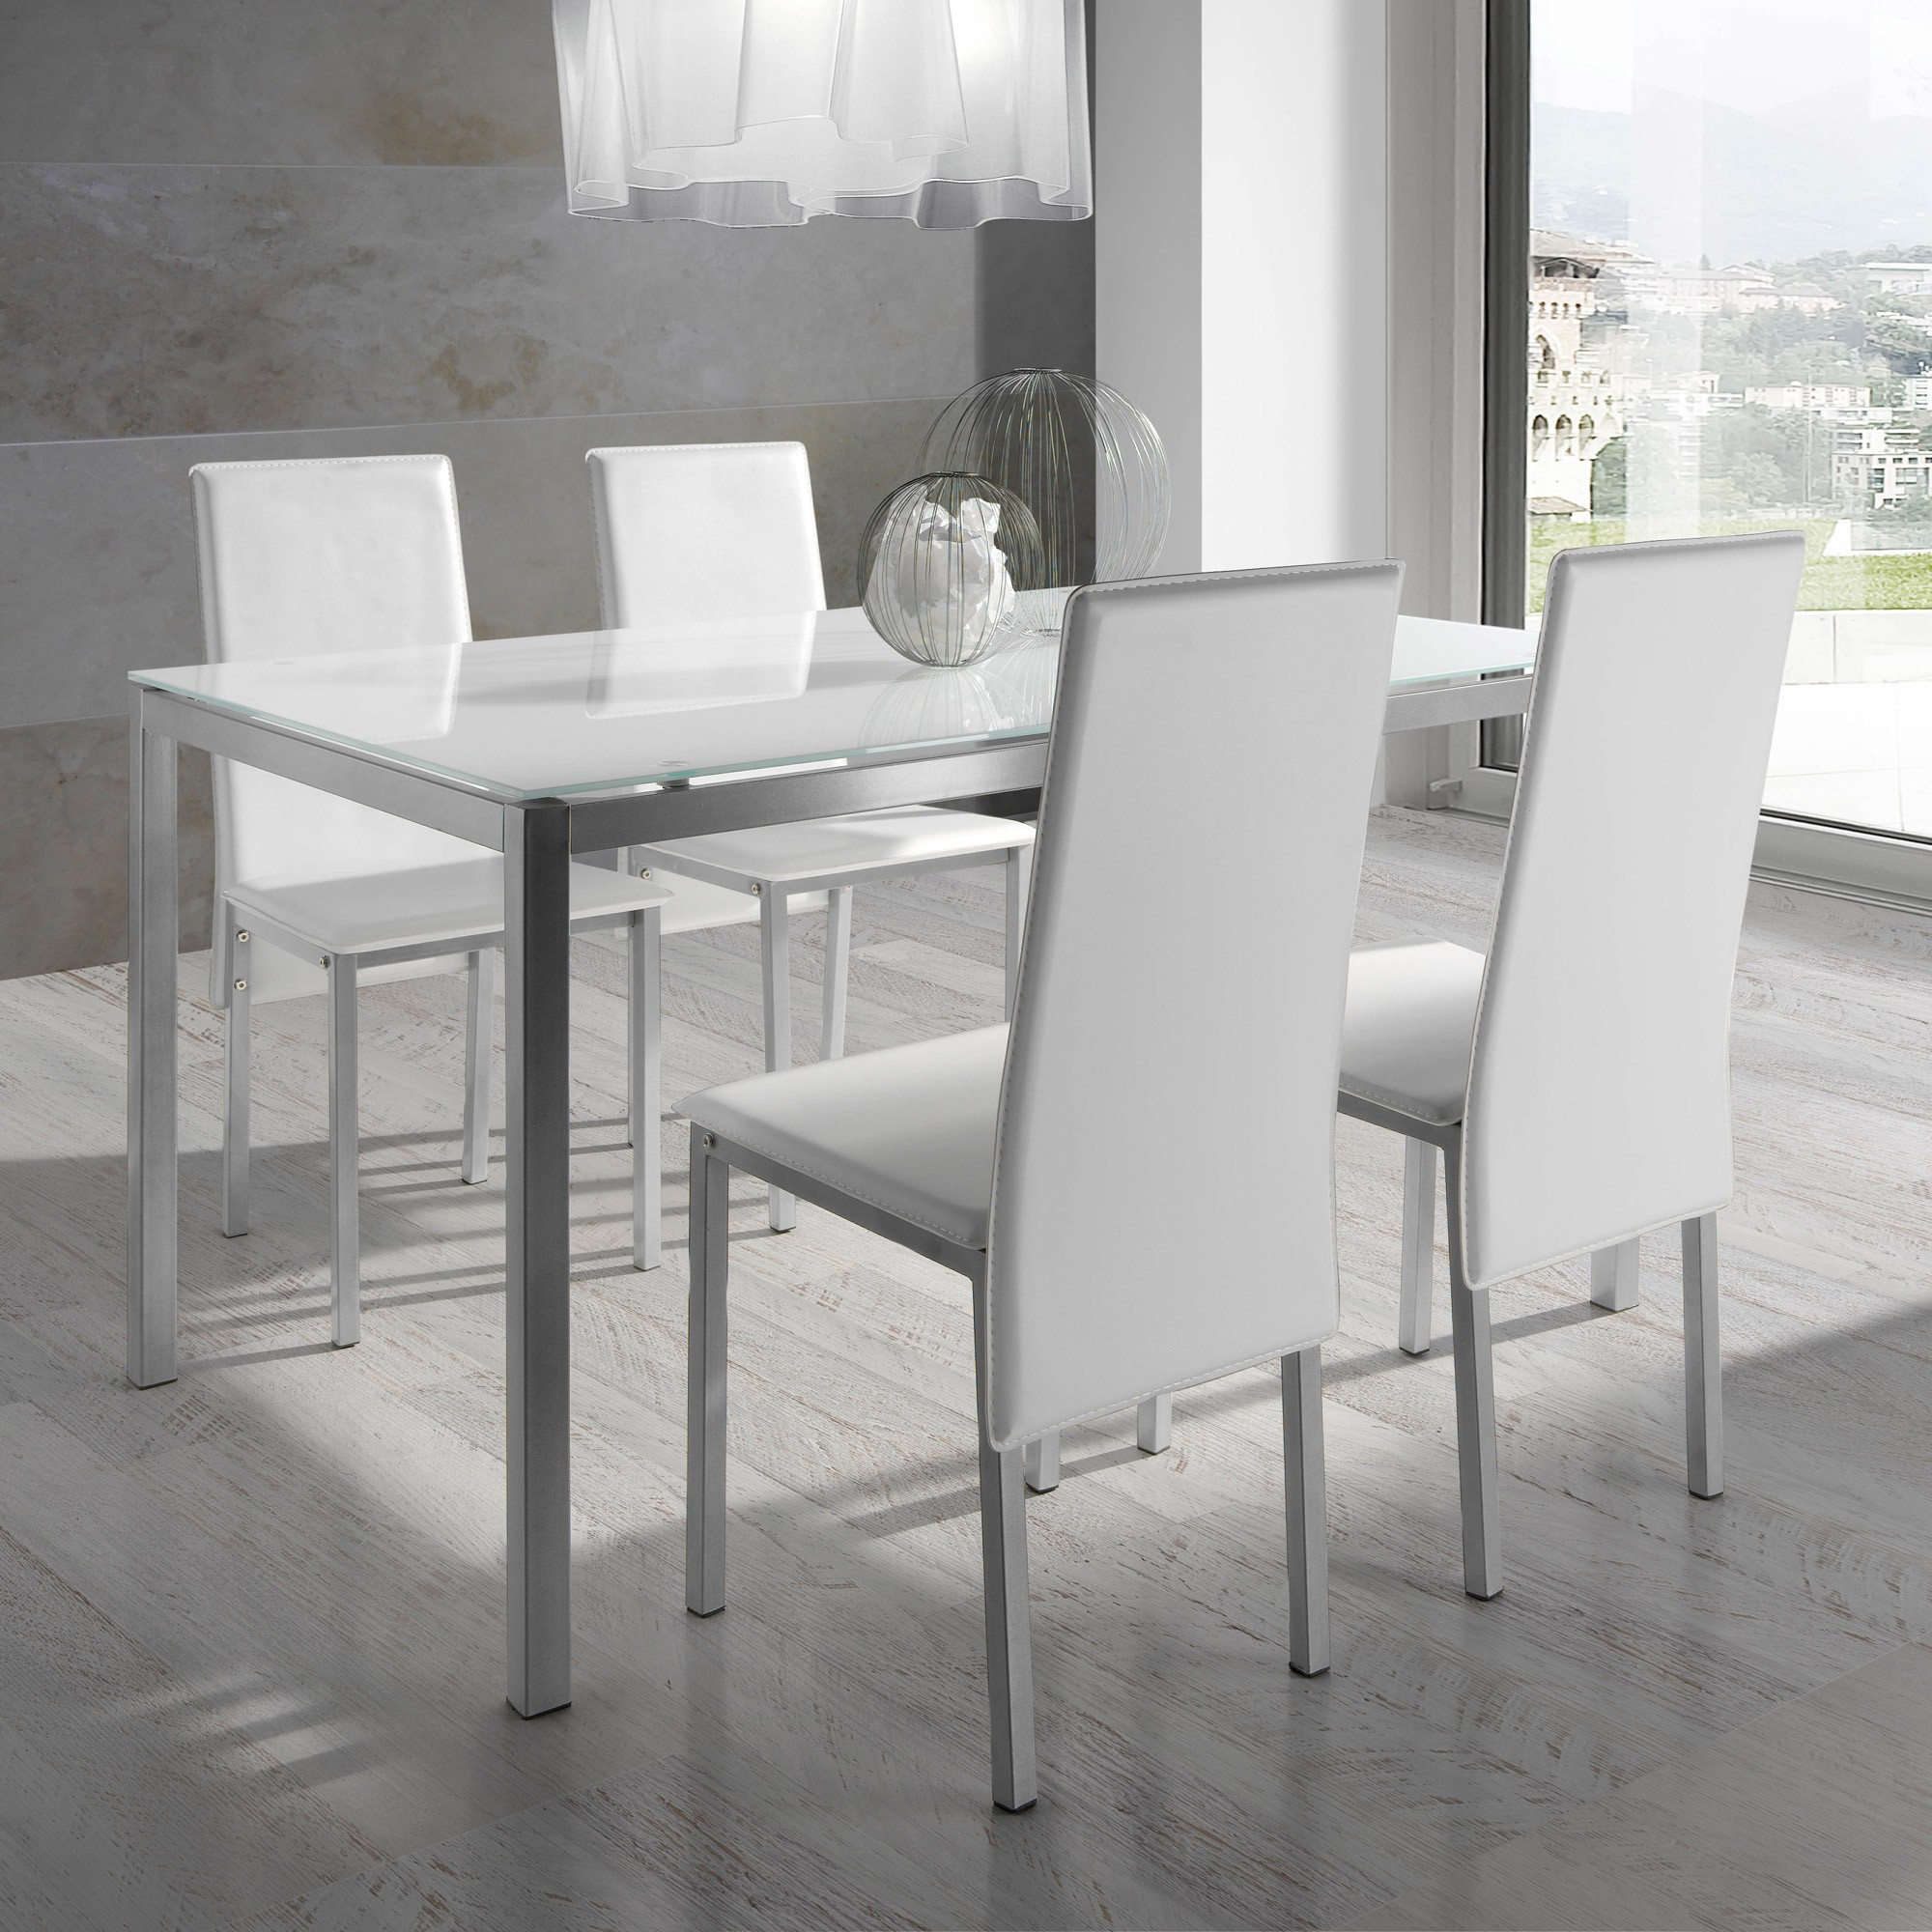 Ensemble table et chaise salle a manger but chaise for Chaise design salle a manger